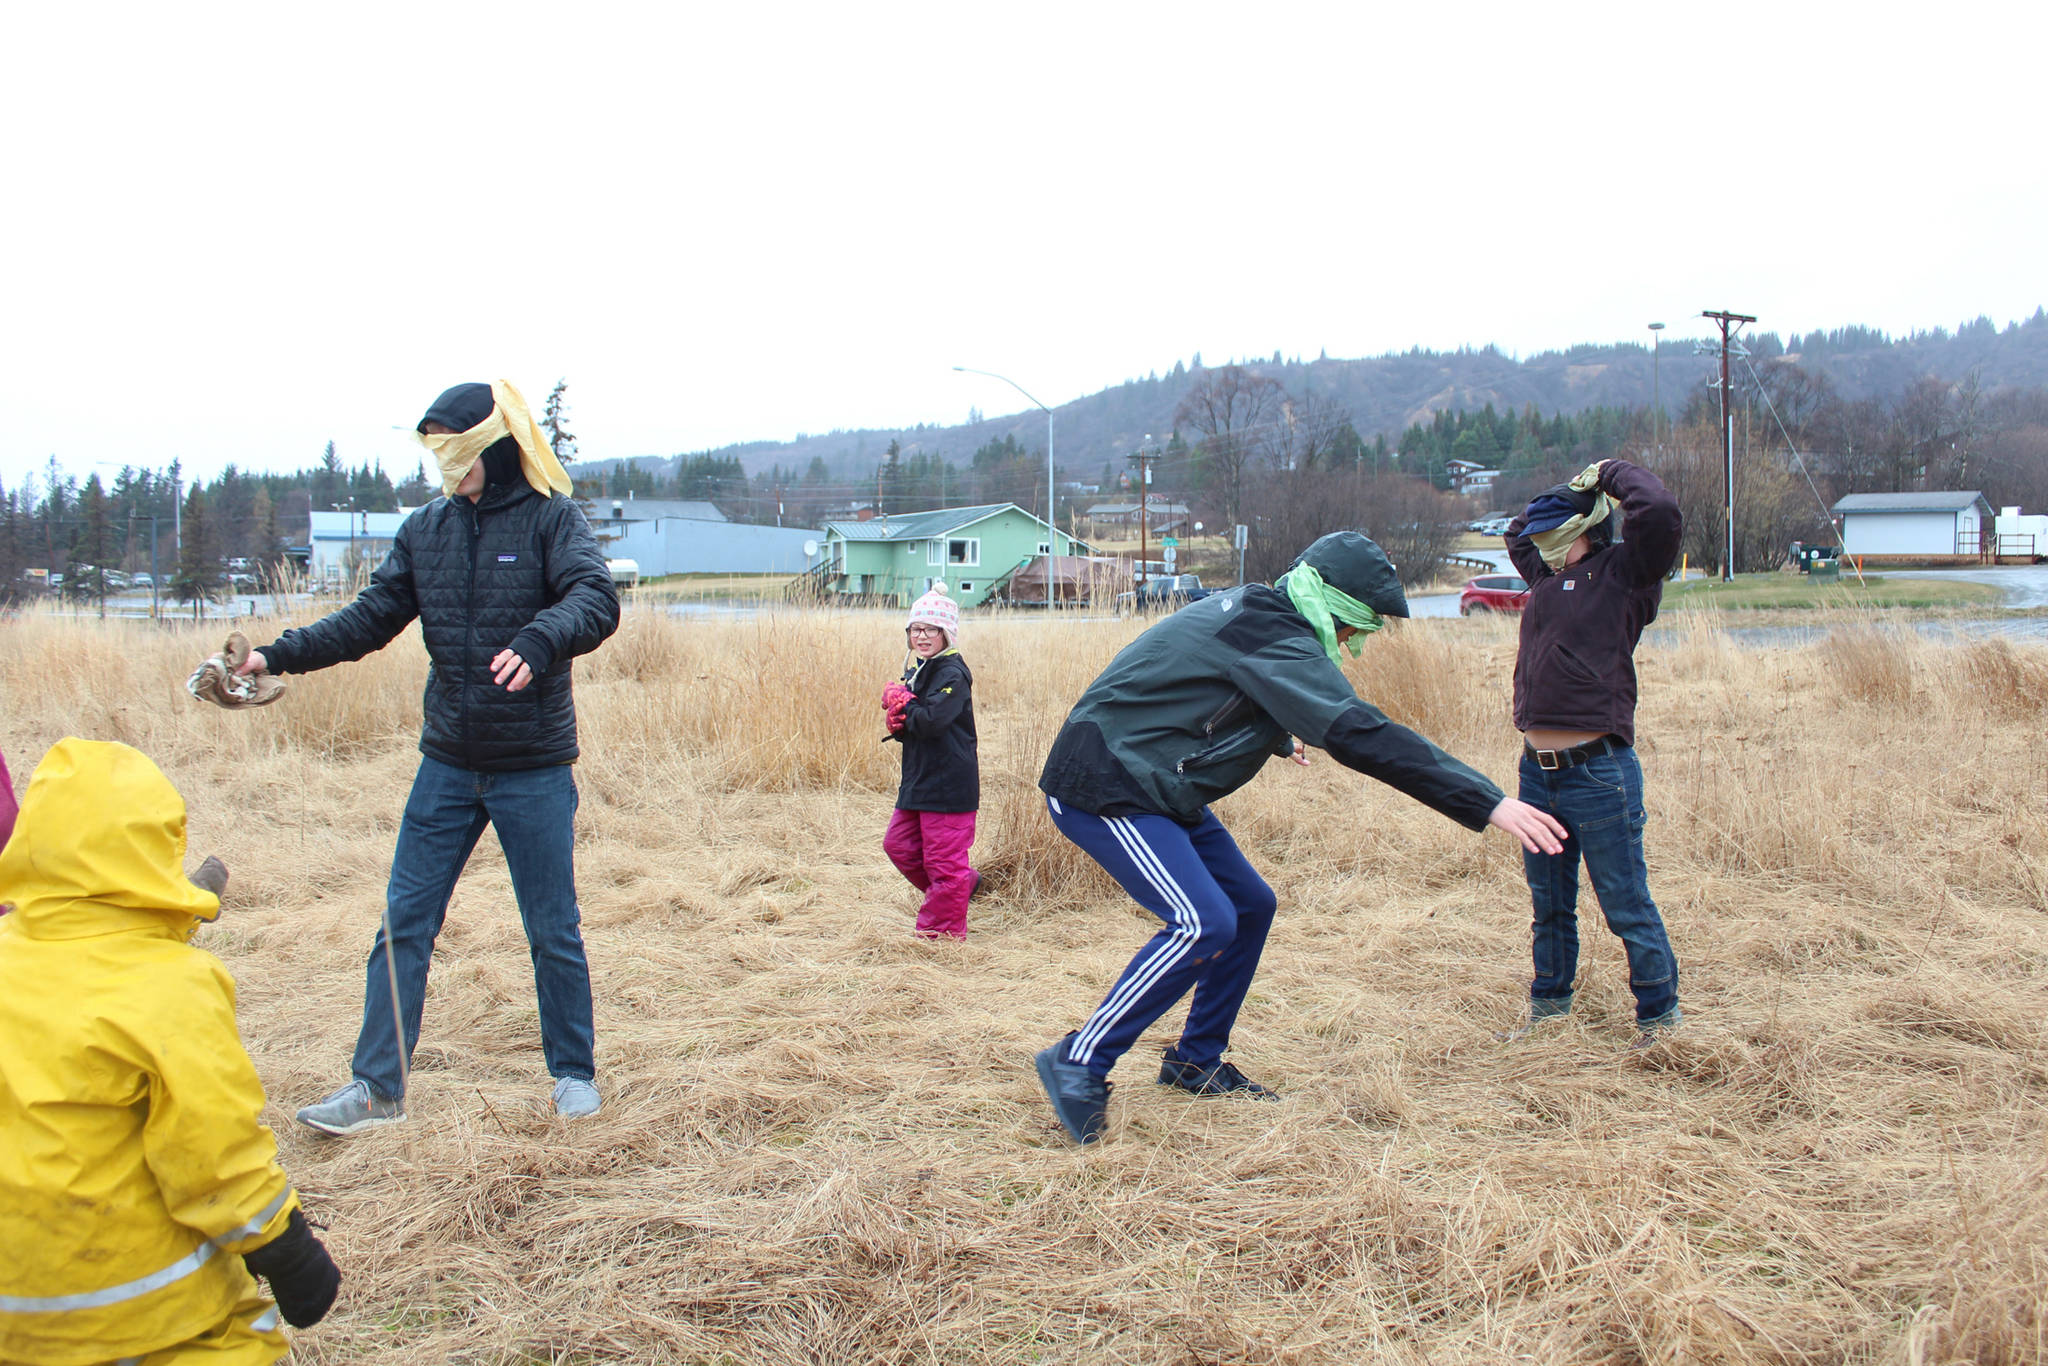 """Homer High School students Simon Dye (left) and Charlie Menke (center), along with Lindsay Seneff play a game with Little Fireweed Students in which they pretend to be foxes that can only find """"mice"""" in a field by following their squeaks on Tuesday, April 24, 2018 in Homer, Alaska. (Photo by Megan Pacer/Homer News)"""